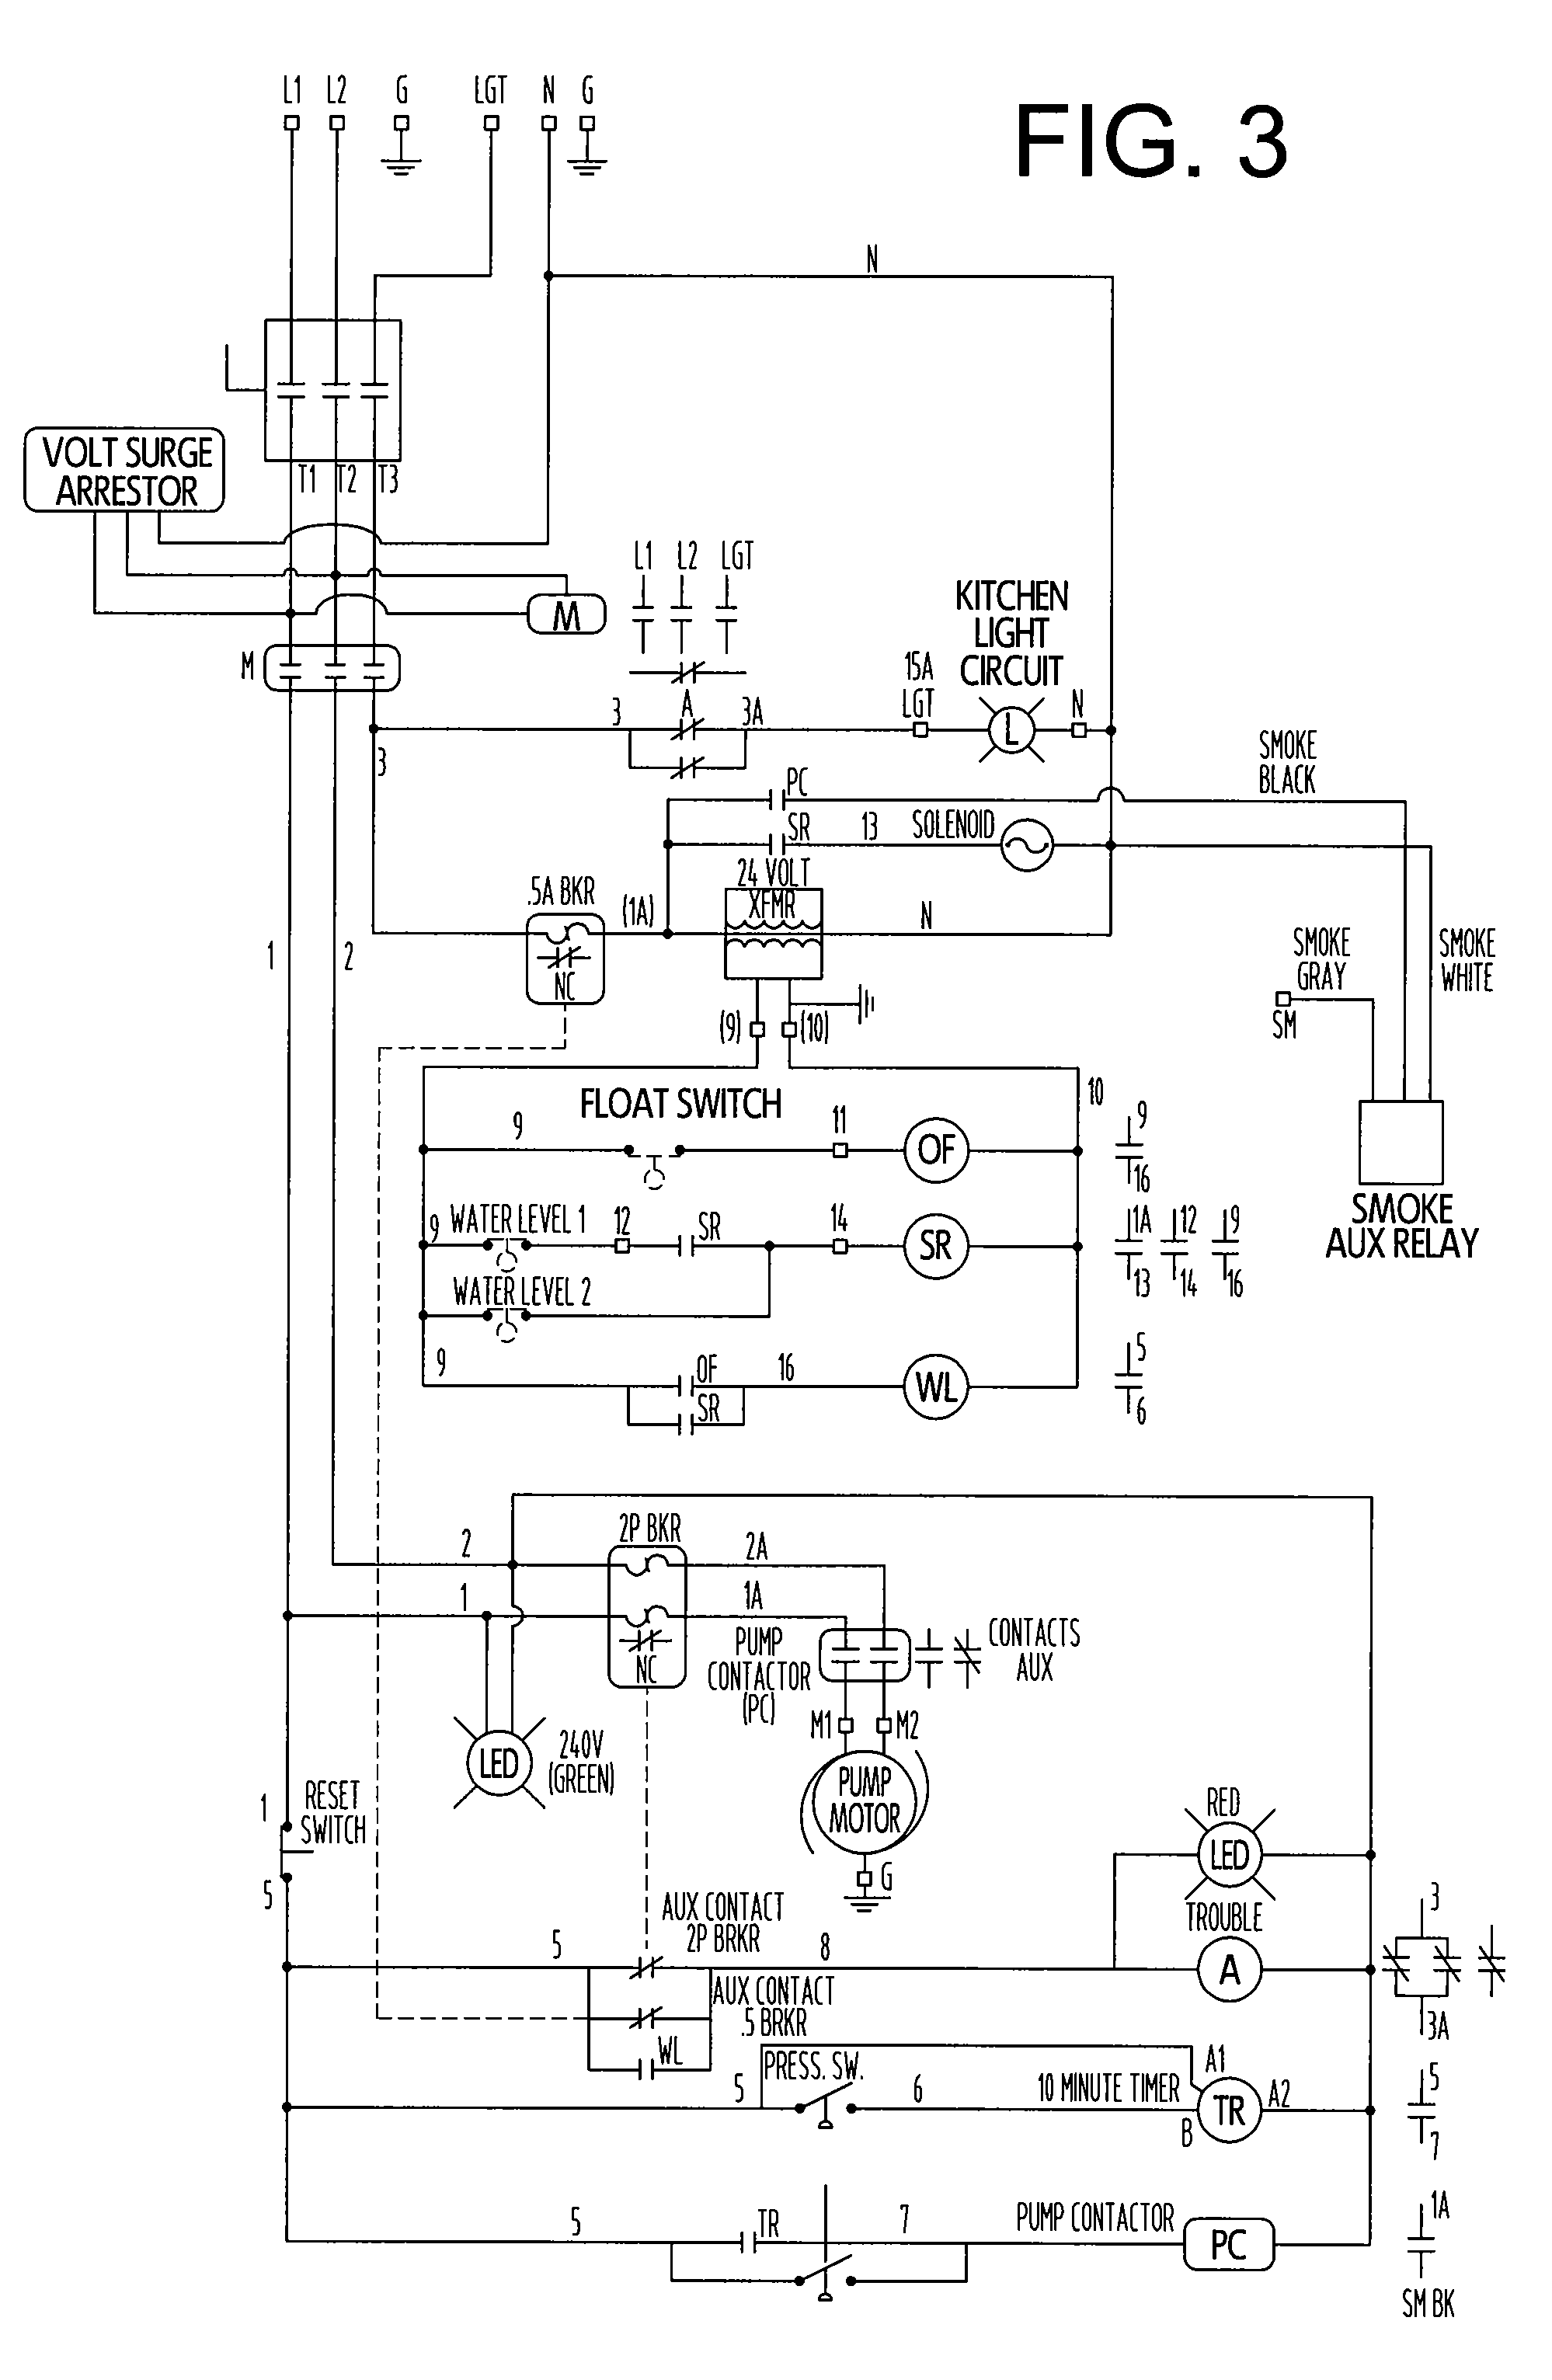 fire pump jockey pump wiring fire image wiring diagram fire pump controller wiring diagram wiring diagram and schematic on fire pump jockey pump wiring